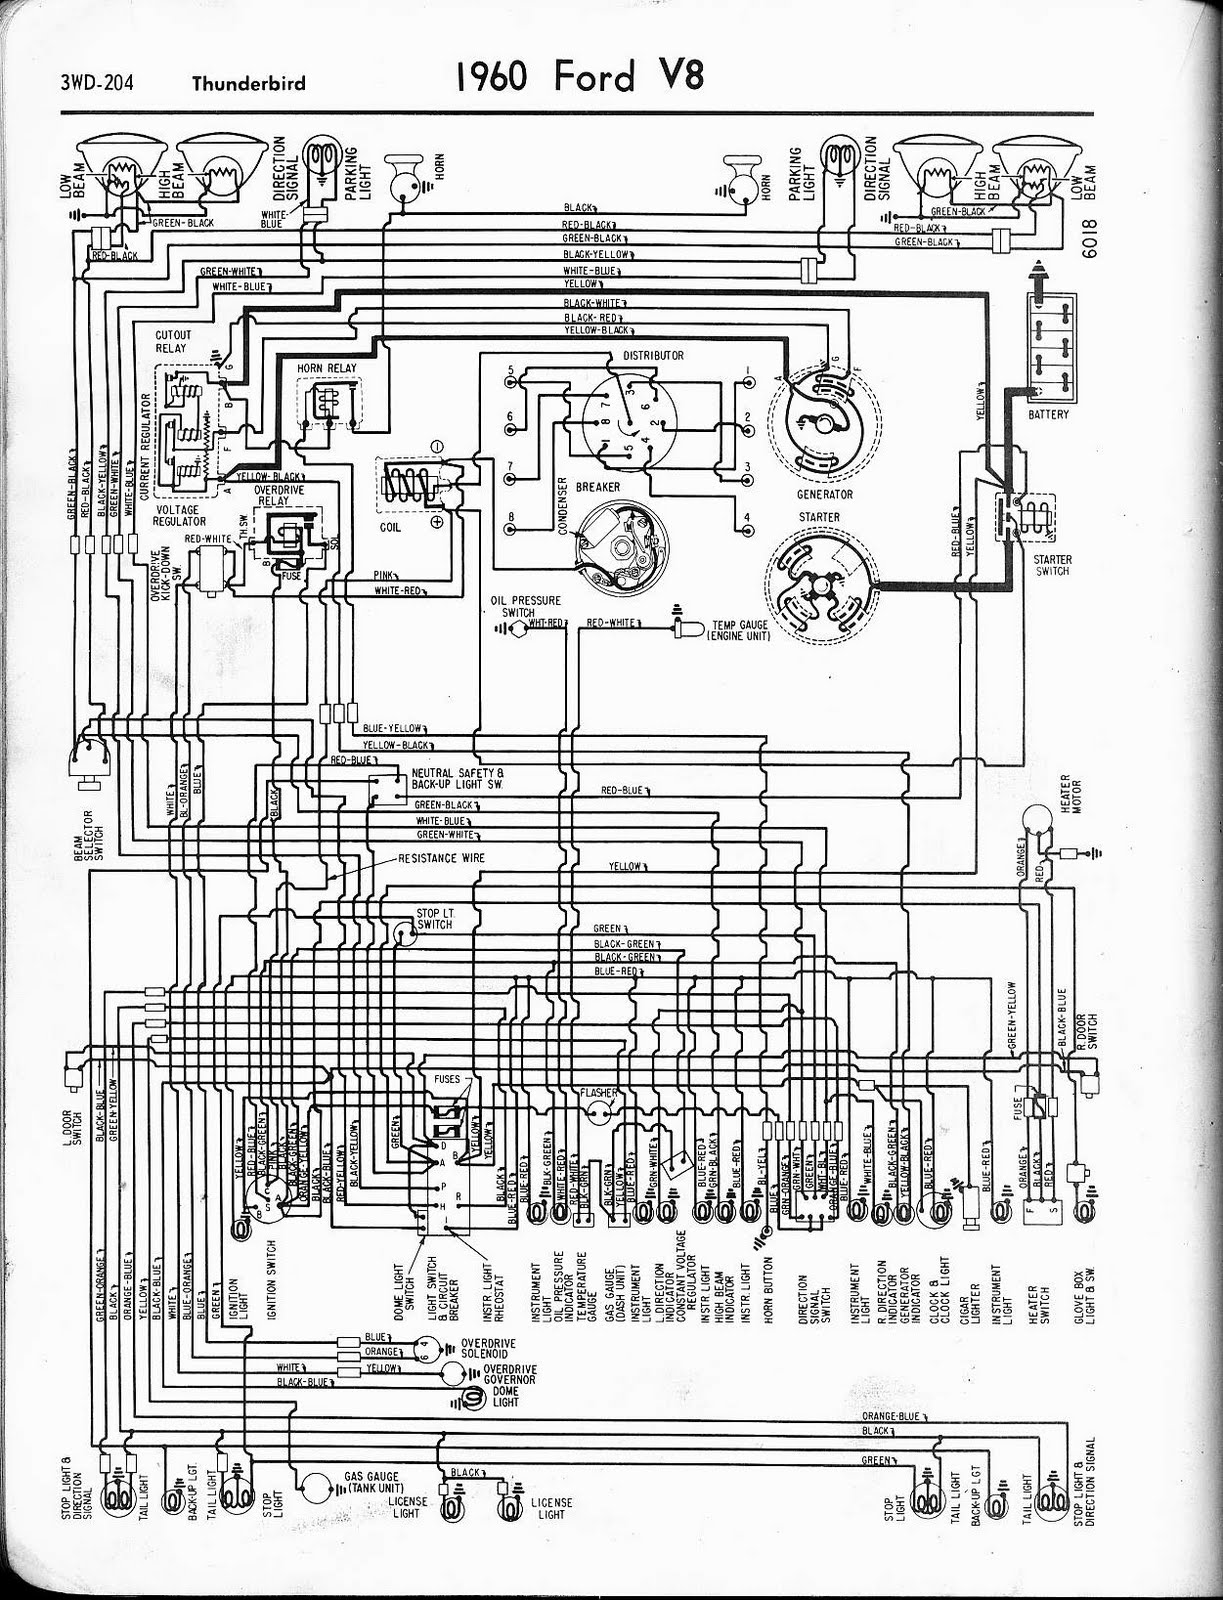 Free Auto Wiring Diagram  1960 Ford V8 Thunderbird Wiring Diagram